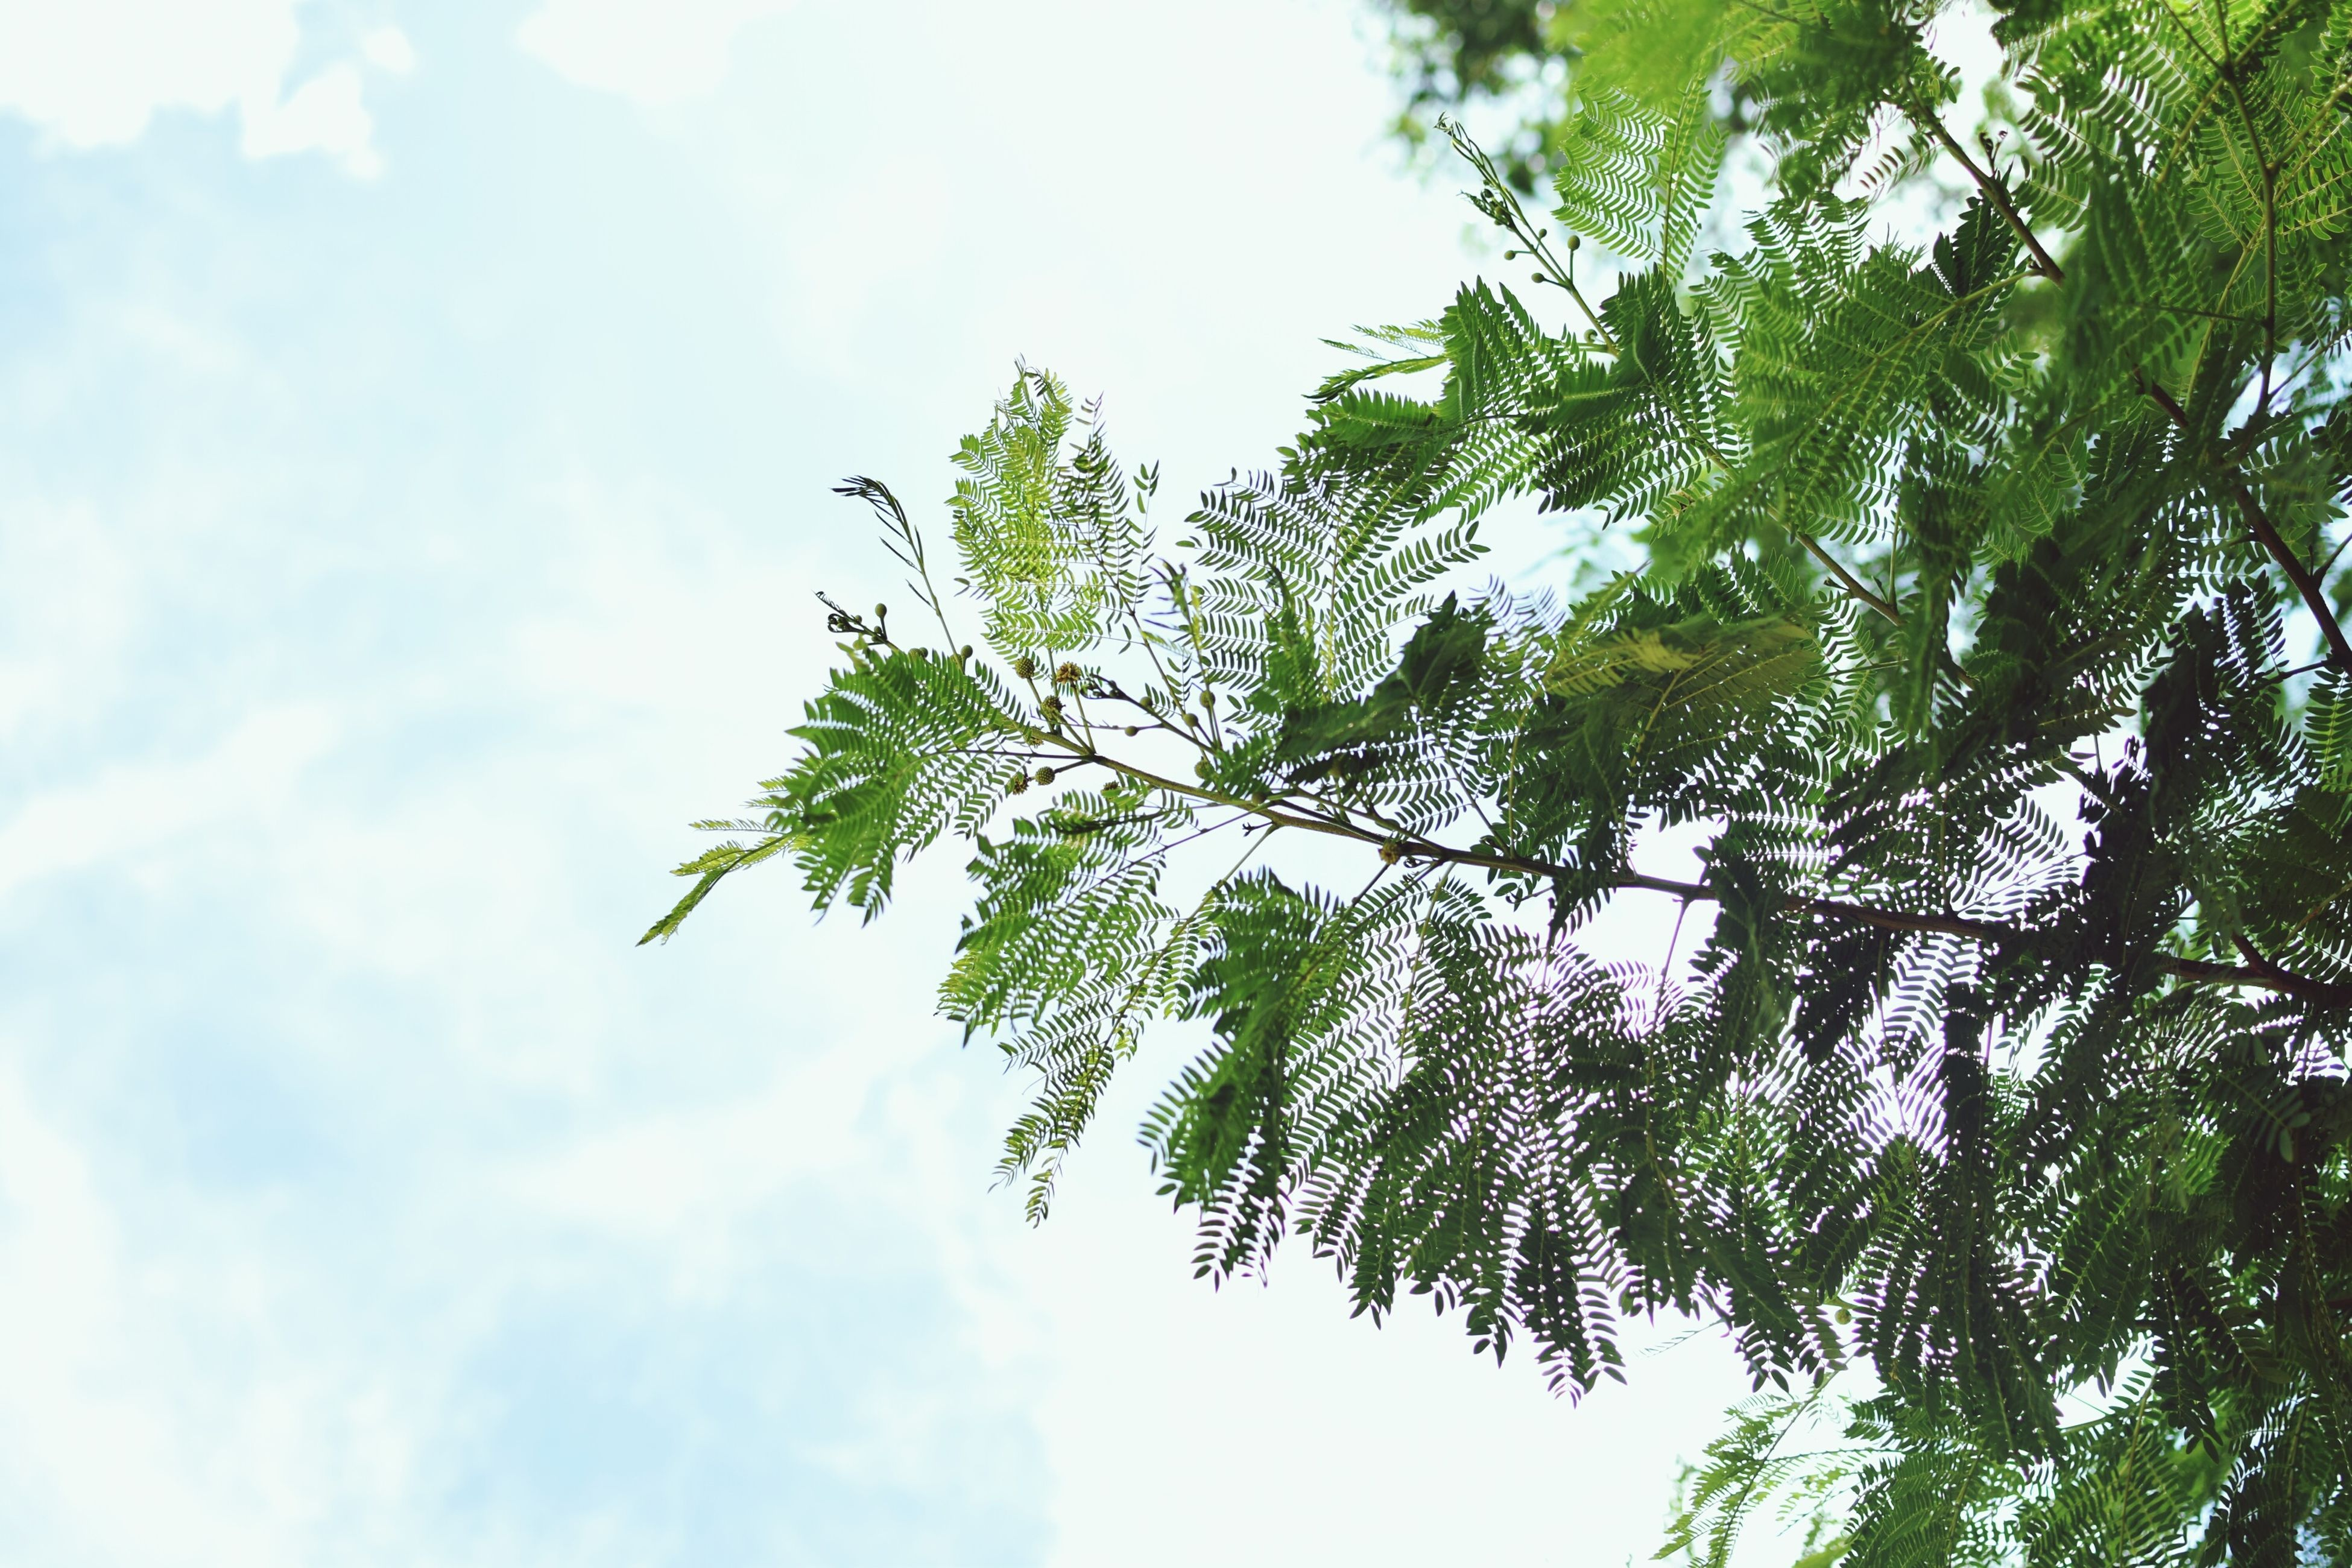 low angle view, tree, growth, sky, branch, leaf, nature, beauty in nature, green color, tranquility, day, outdoors, no people, cloud - sky, freshness, cloud, sunlight, green, scenics, close-up